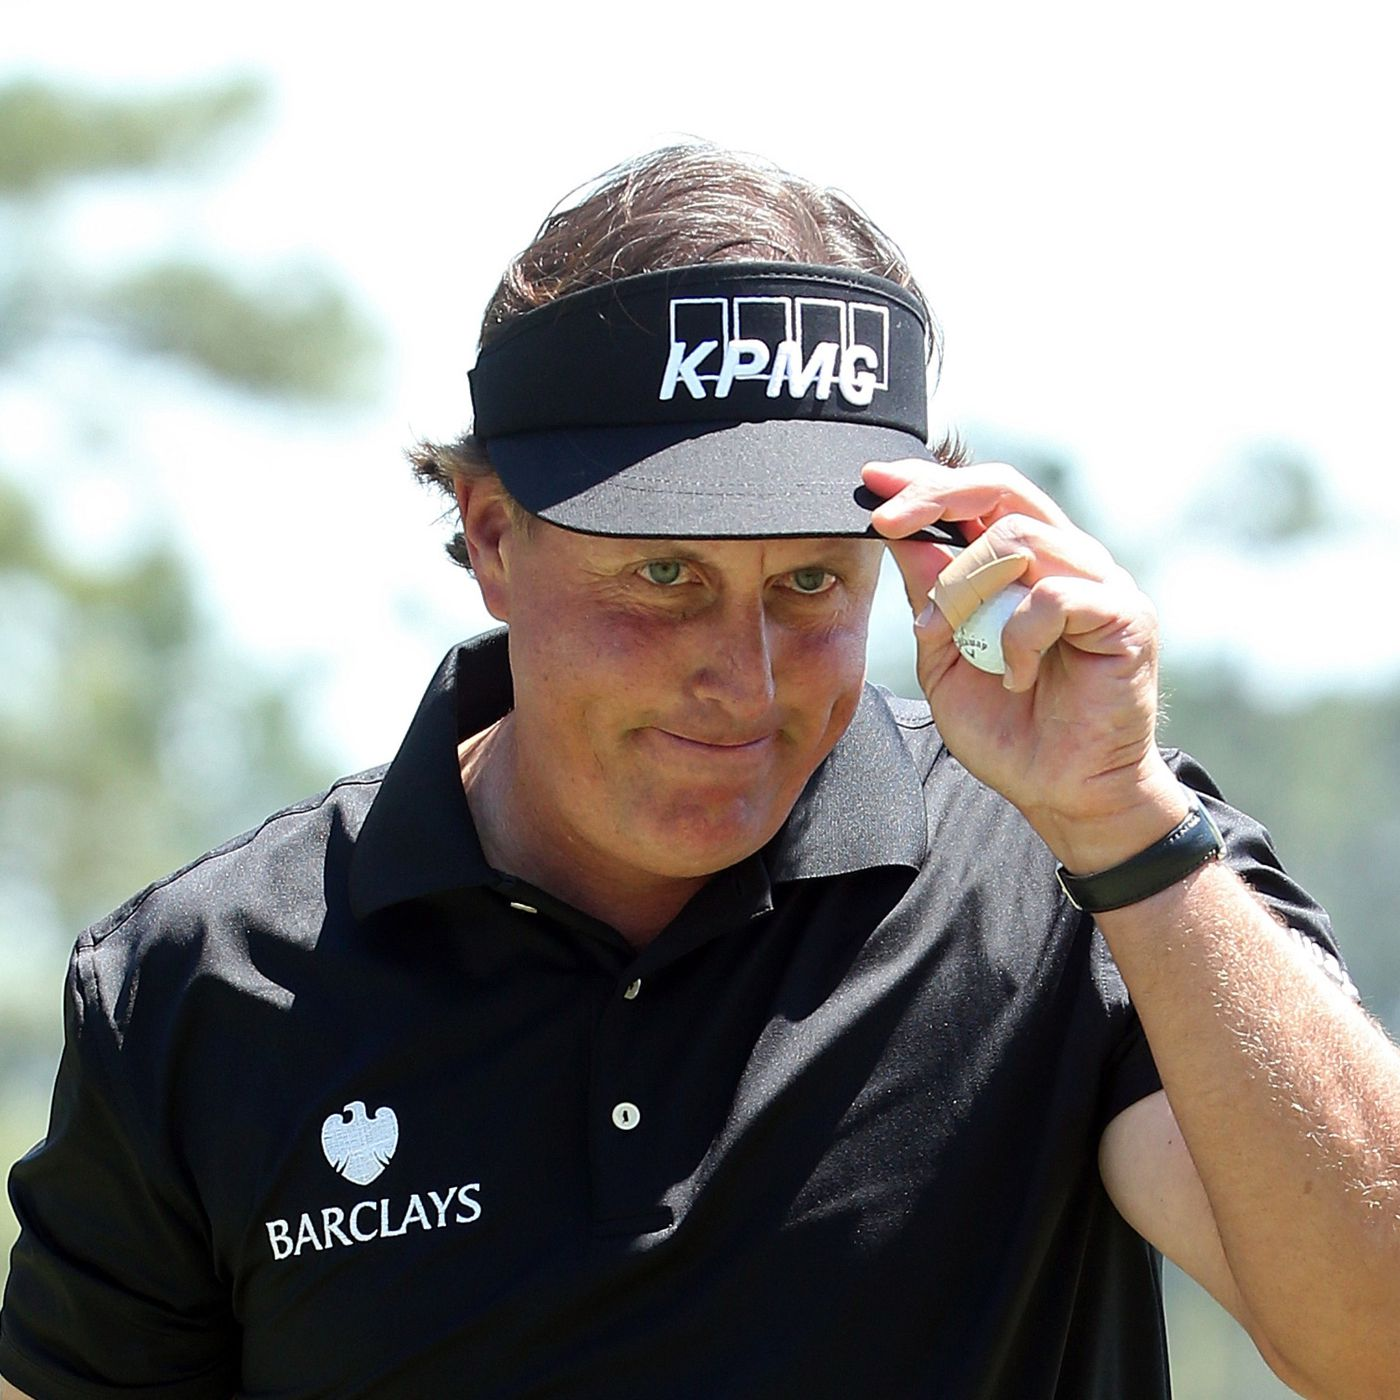 Phil Mickelson bombs in the best putt of the Masters so far